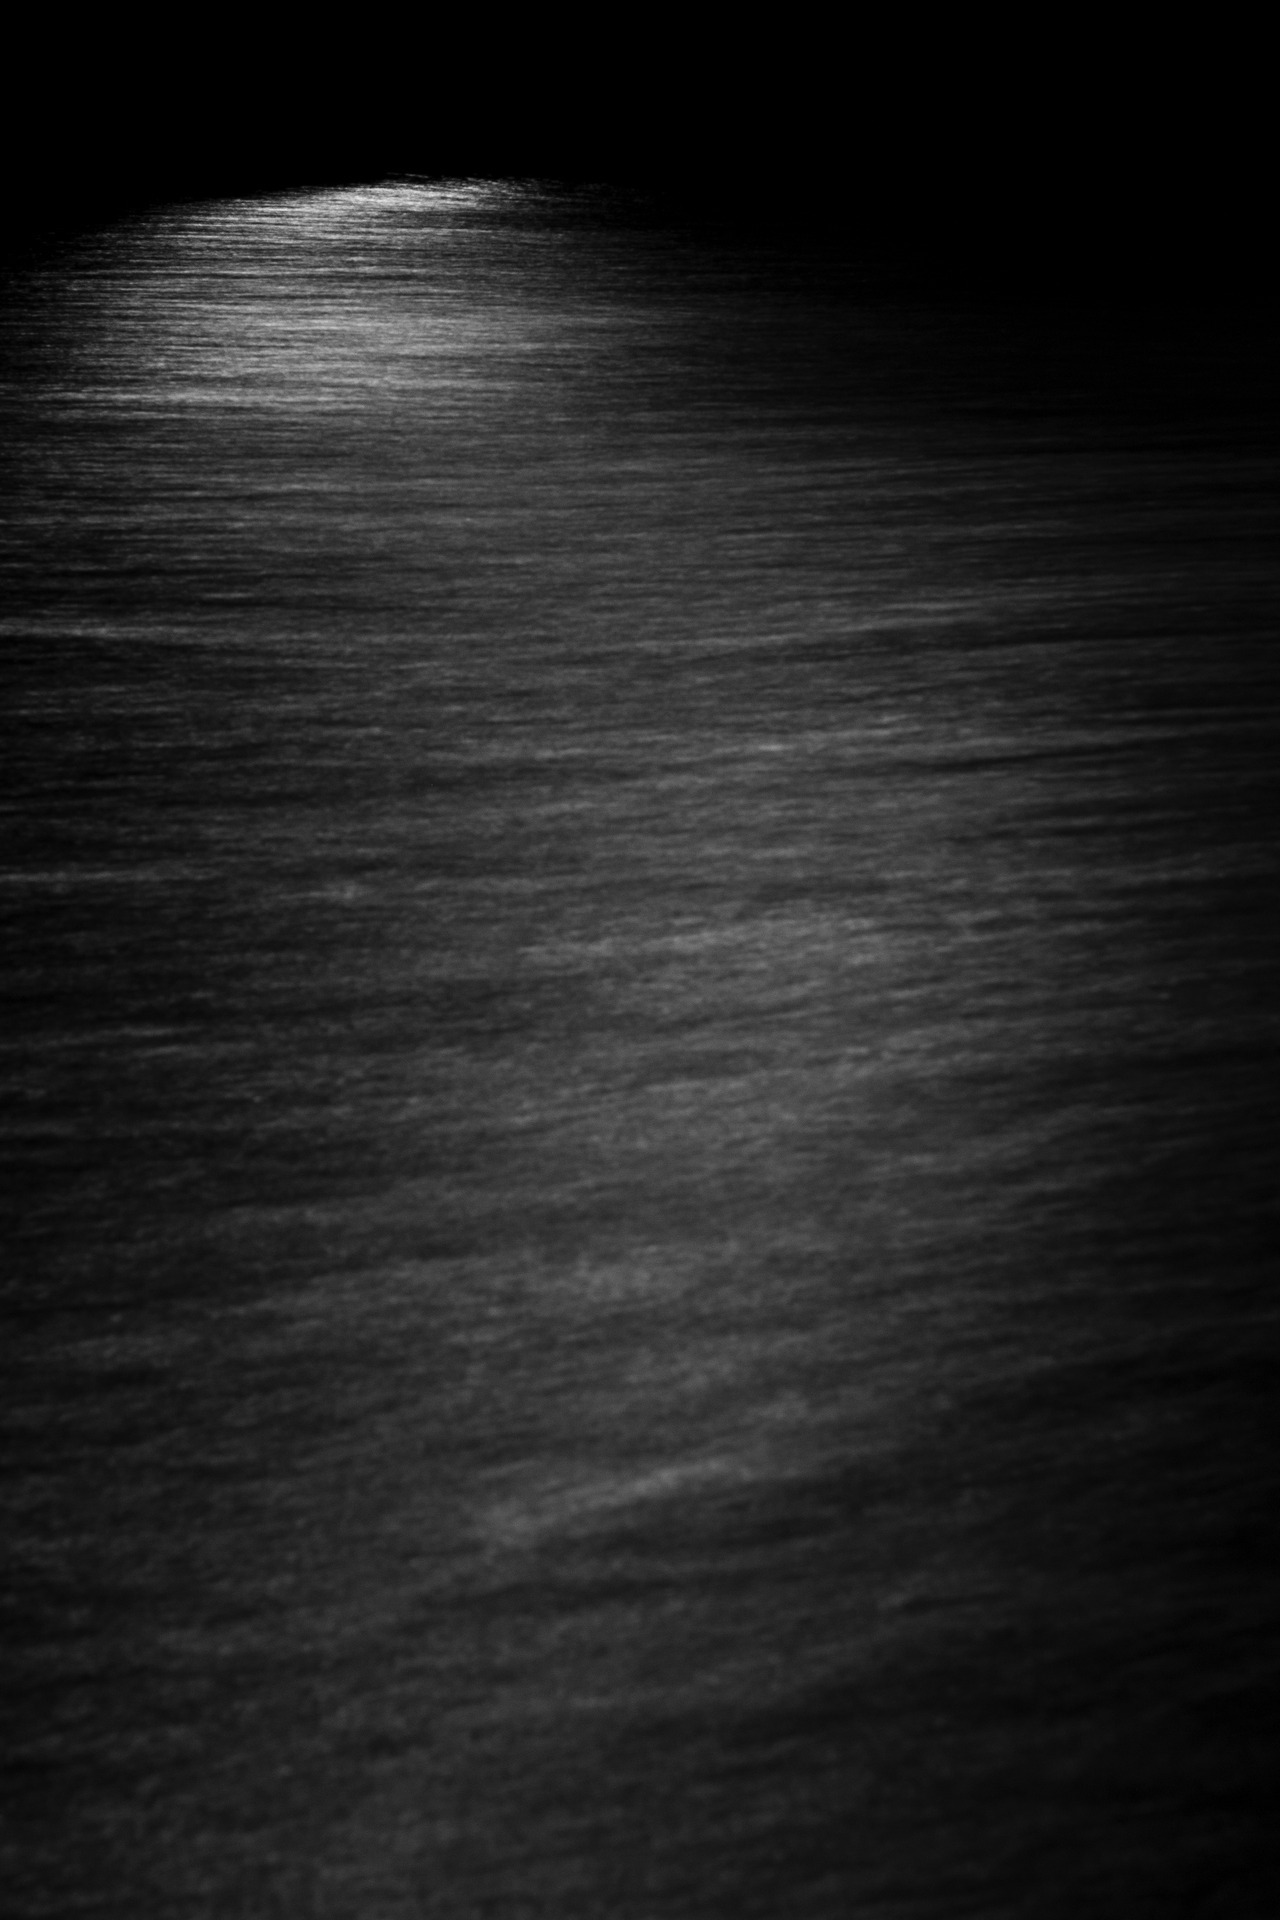 Moonlight reflected in the water- 2012  C.F.B.  When the wind blows over the water it becomes slightly agitated and these great streaks begin to form because of the moonlight. I'm going to try this more often and hopefully I can catch something in the light itself, like a person inside a boat or something. Lots of possibilities!